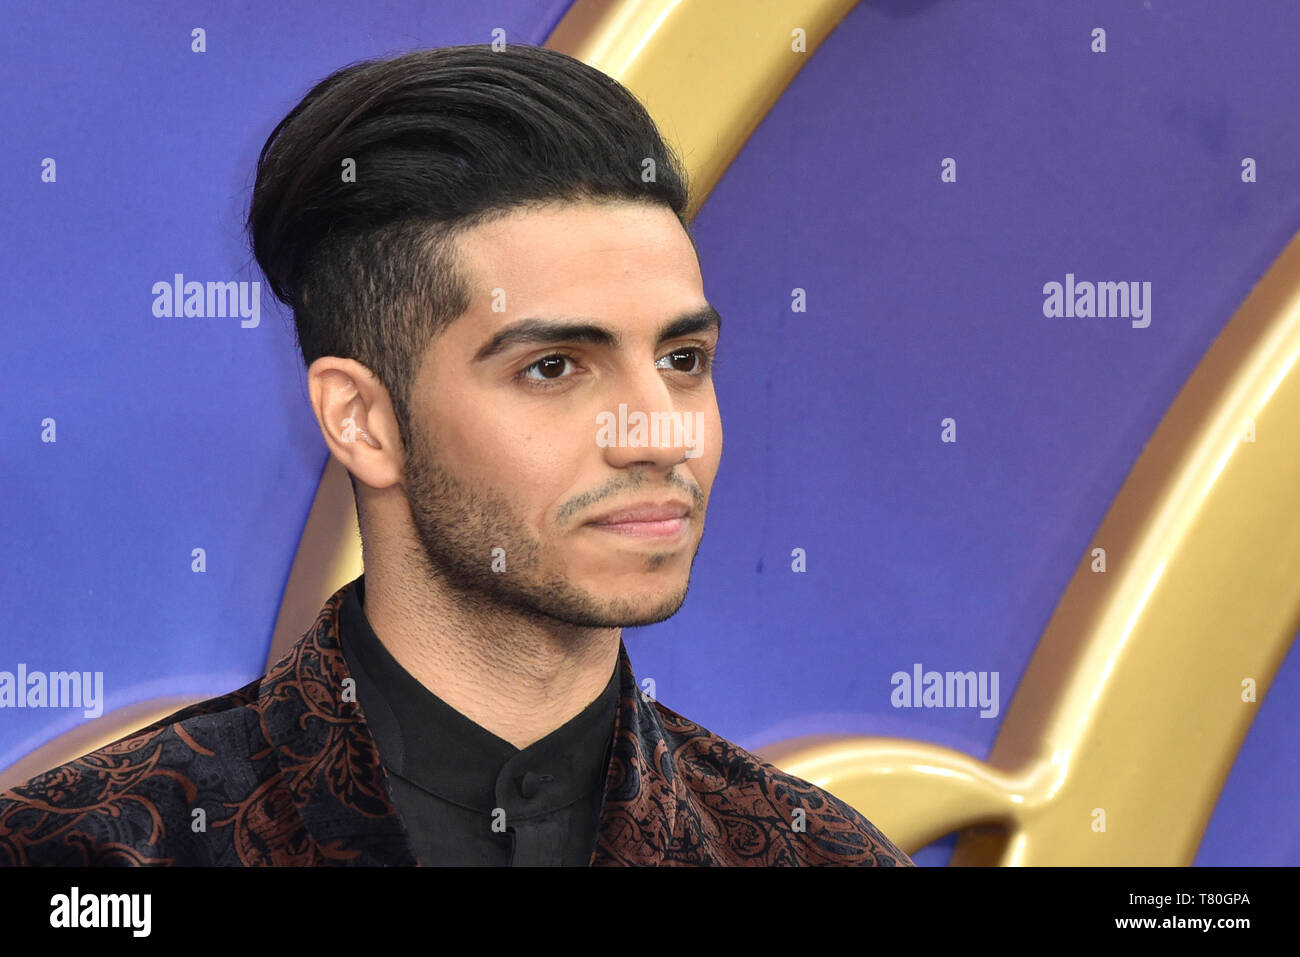 Mena Massoud attends the European Gala of 'Aladdin' at the Odeon Luxe Leicester Square in London, England. - Stock Image